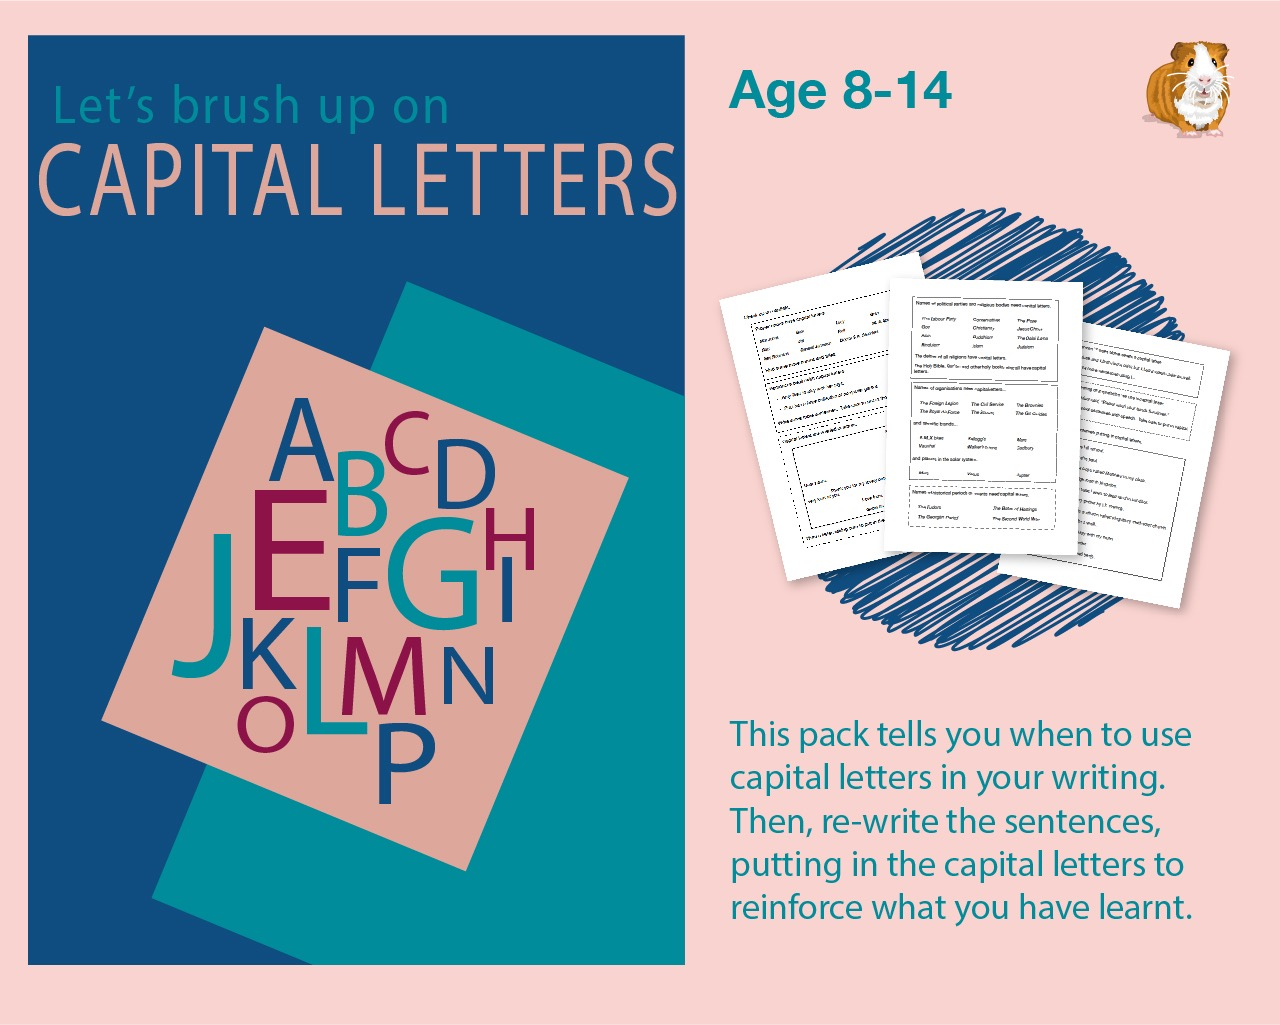 Let's Brush Up On Capital Letters (Improve Your English) 9-14 years